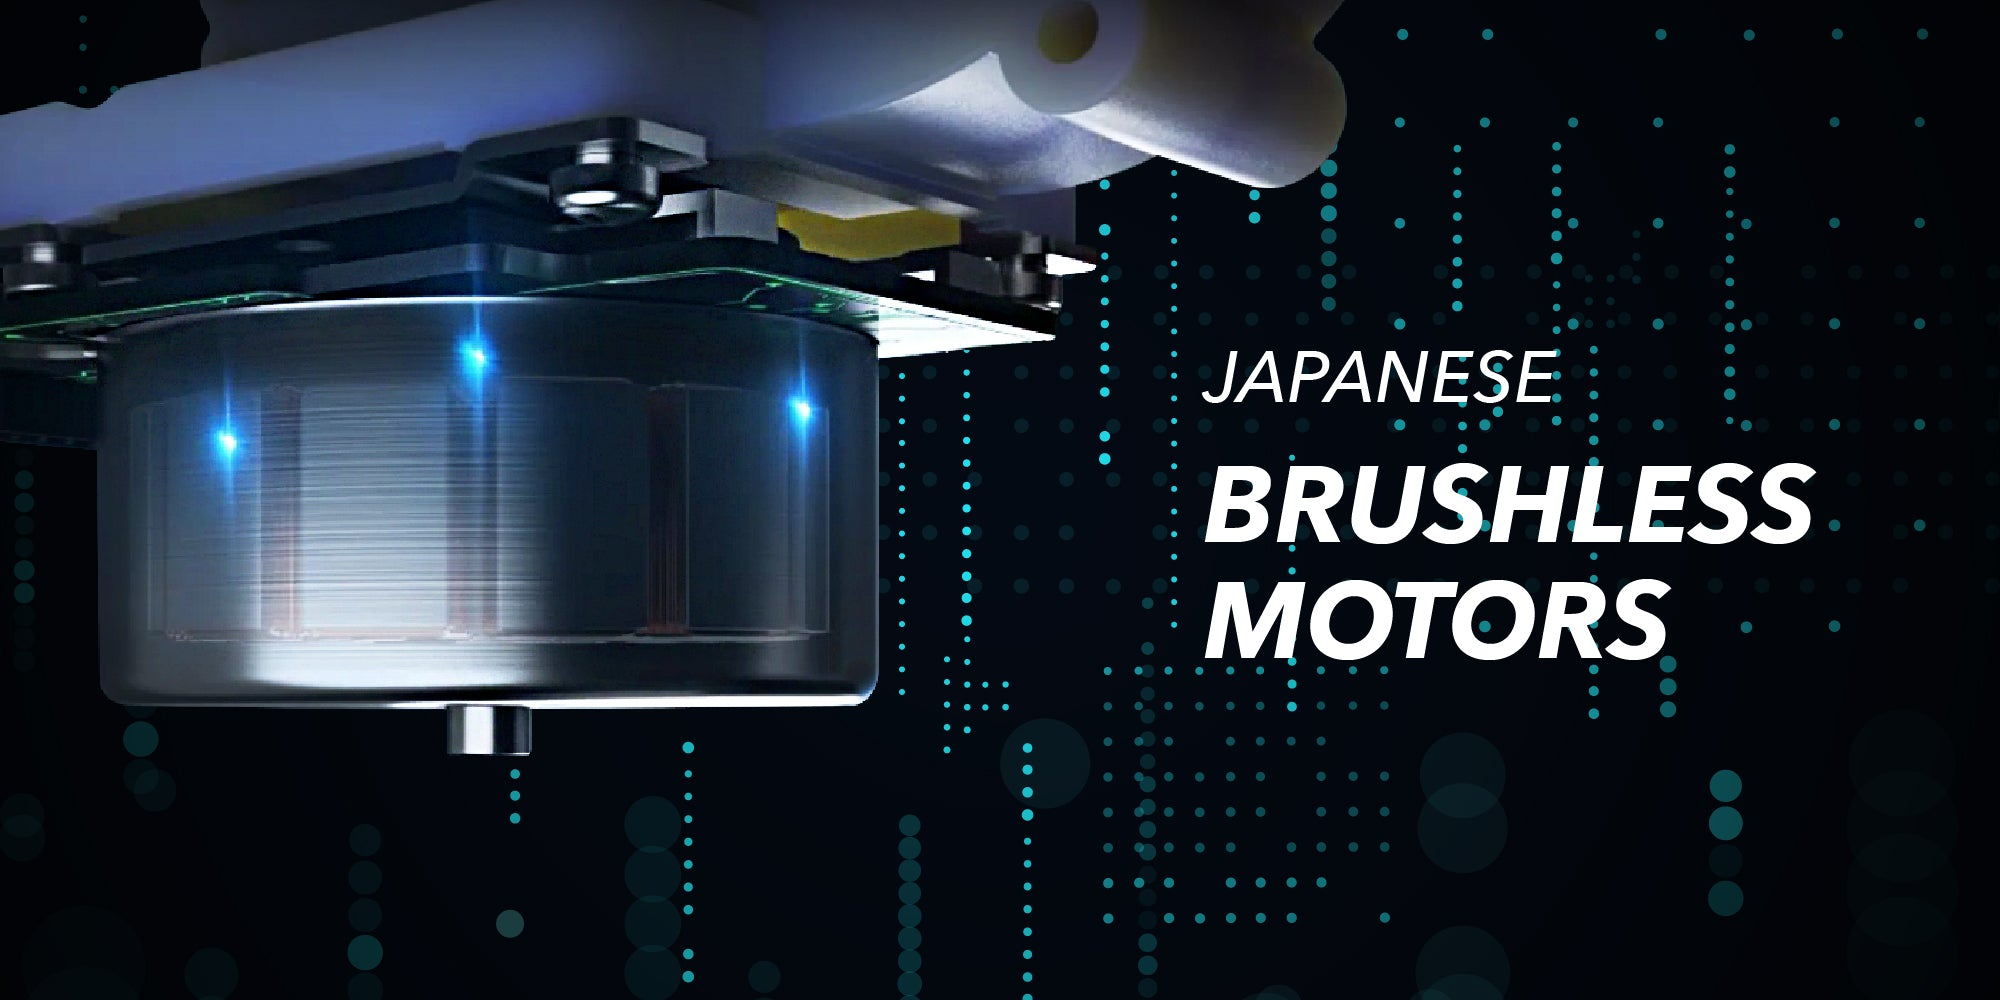 Japanese Brushless motors